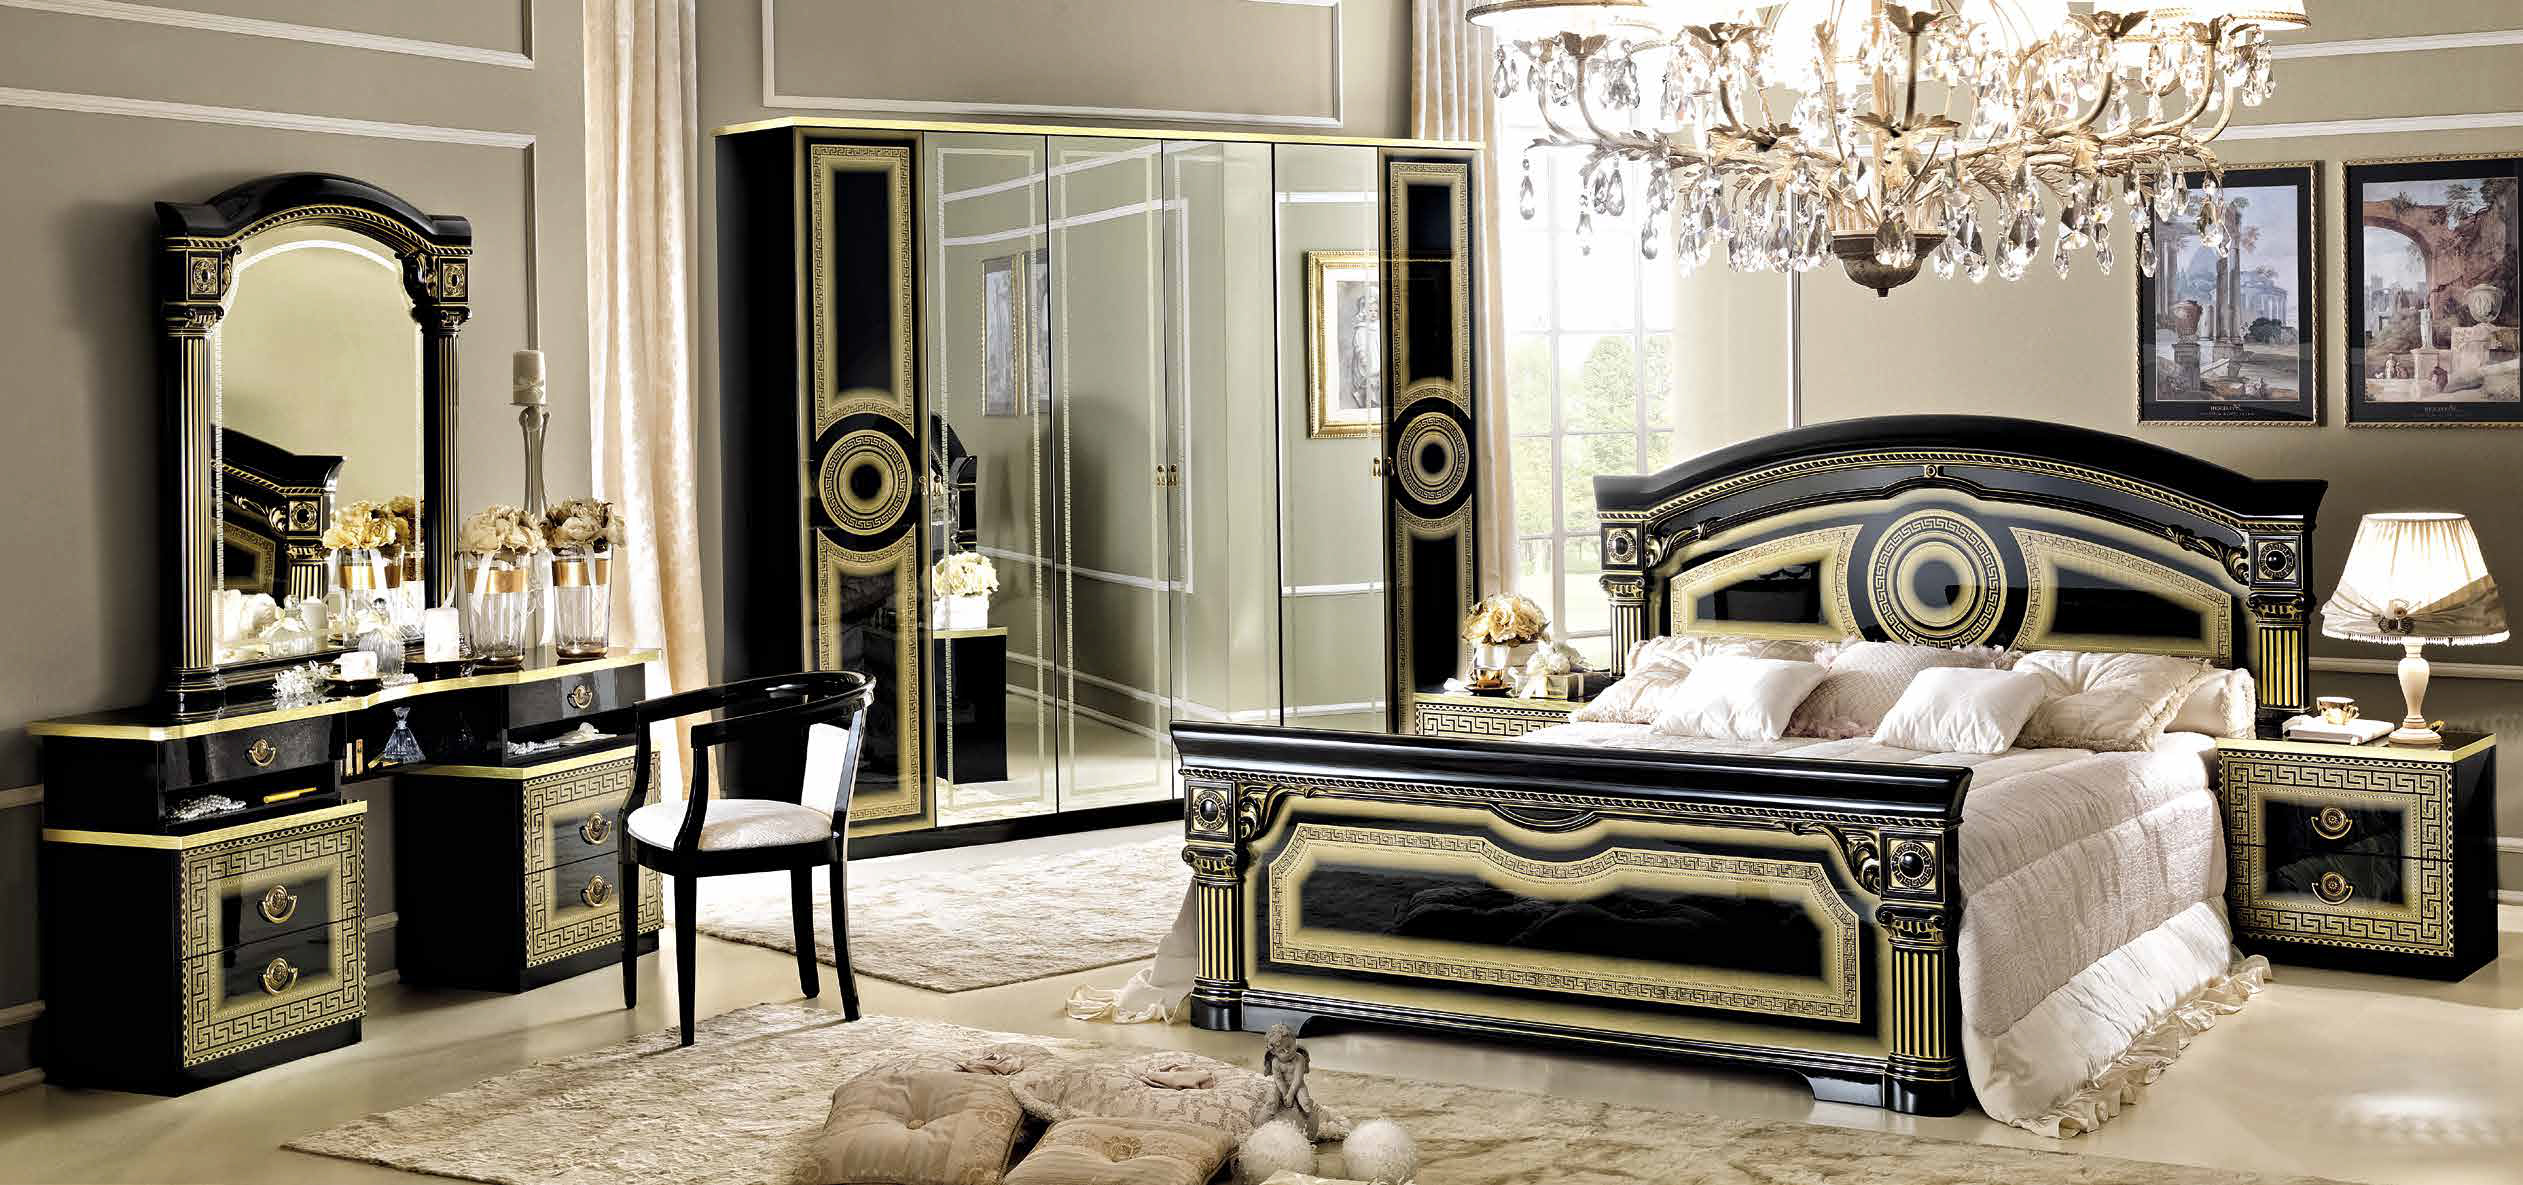 aida schwarz gold schlafzimmer yuvam m belhaus in. Black Bedroom Furniture Sets. Home Design Ideas